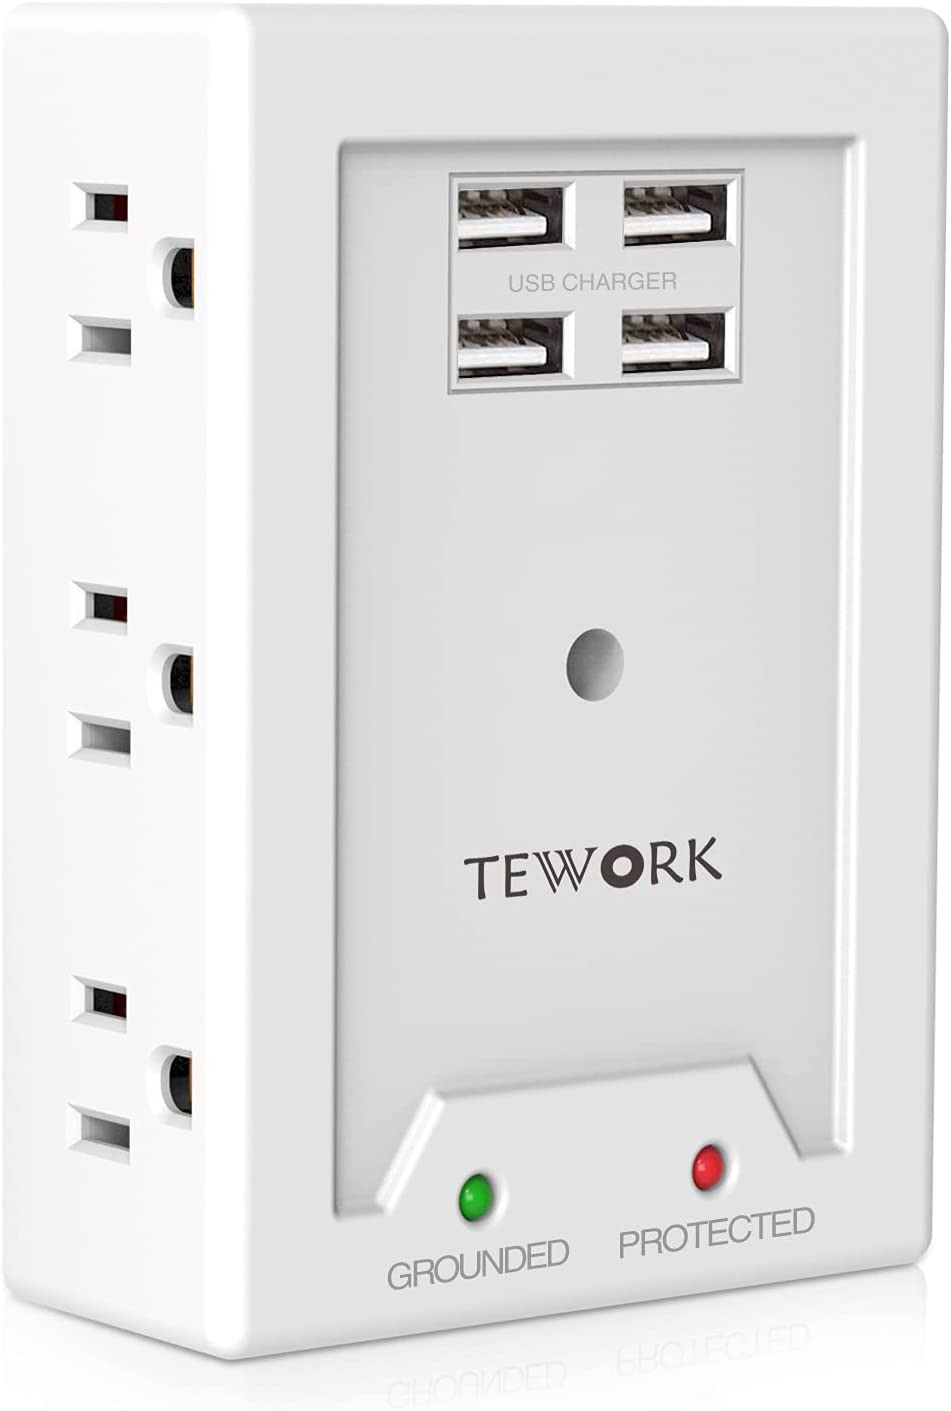 USB Wall Charger Surge Protector - TEWORK Multi Plug Outlet Extender with 4 USB Ports(Smart 3.1A Total), 6-Outlet Wall Mount Adapter Widely Spaced with Top Phone Holder, White